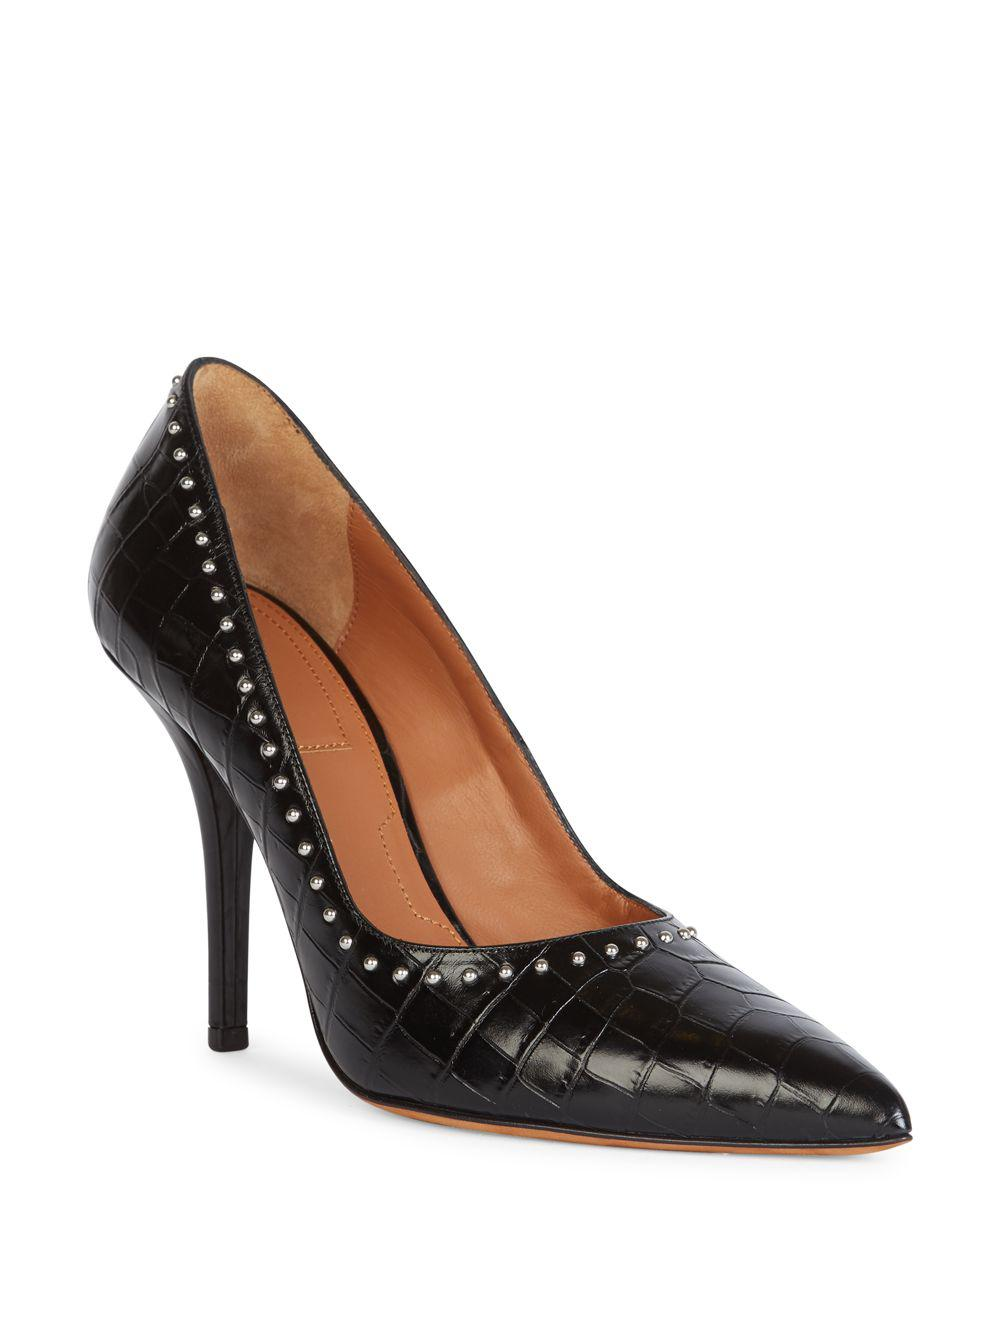 eb9d28e4db1 Lyst - Givenchy Elegant Studded Croc-embossed Leather Point-toe ...